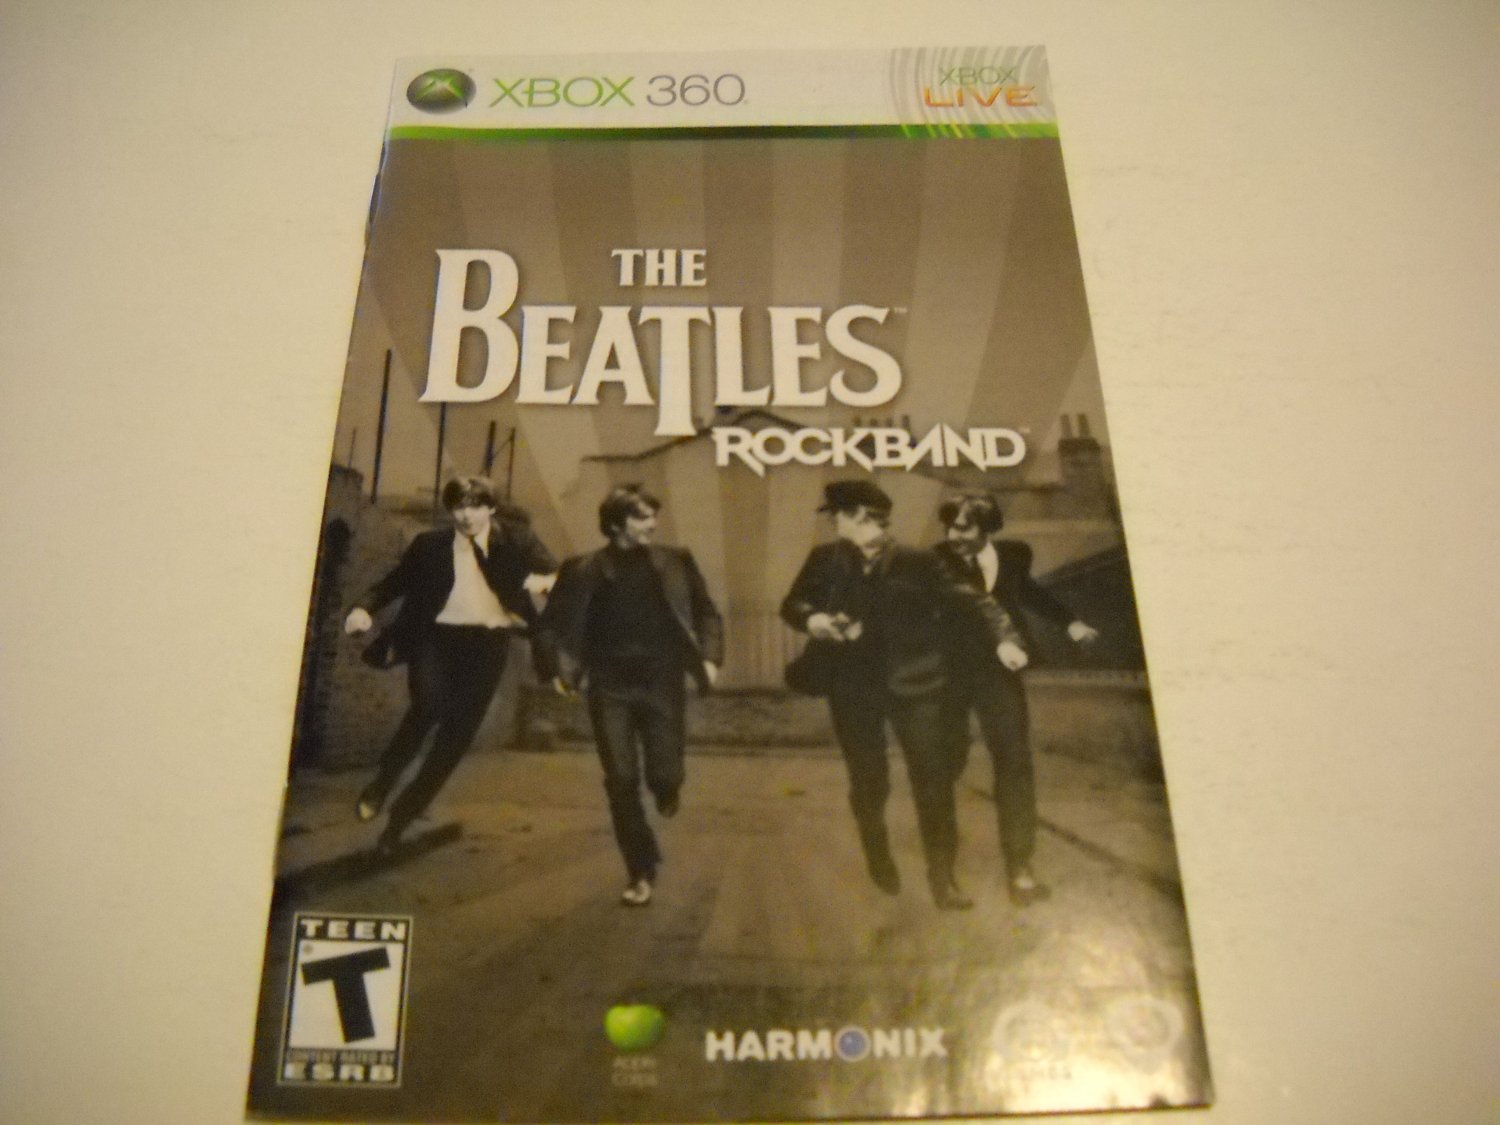 Manual ONLY ~  for The Beatles Rock Band    - Xbox 360 Instruction Booklet